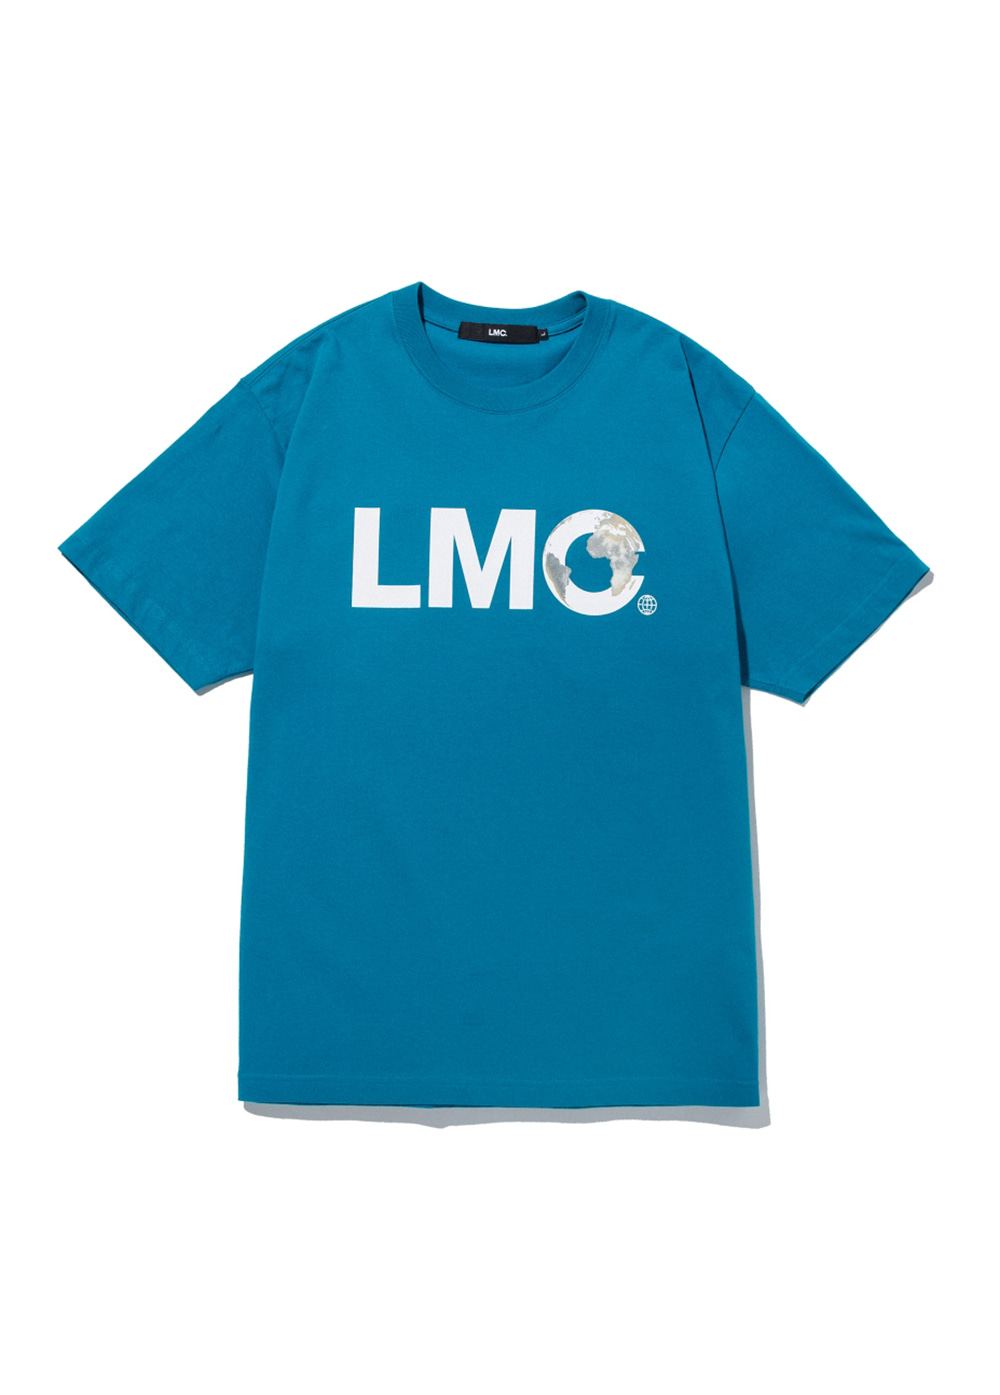 LMC EARTH LOGO TEE teal